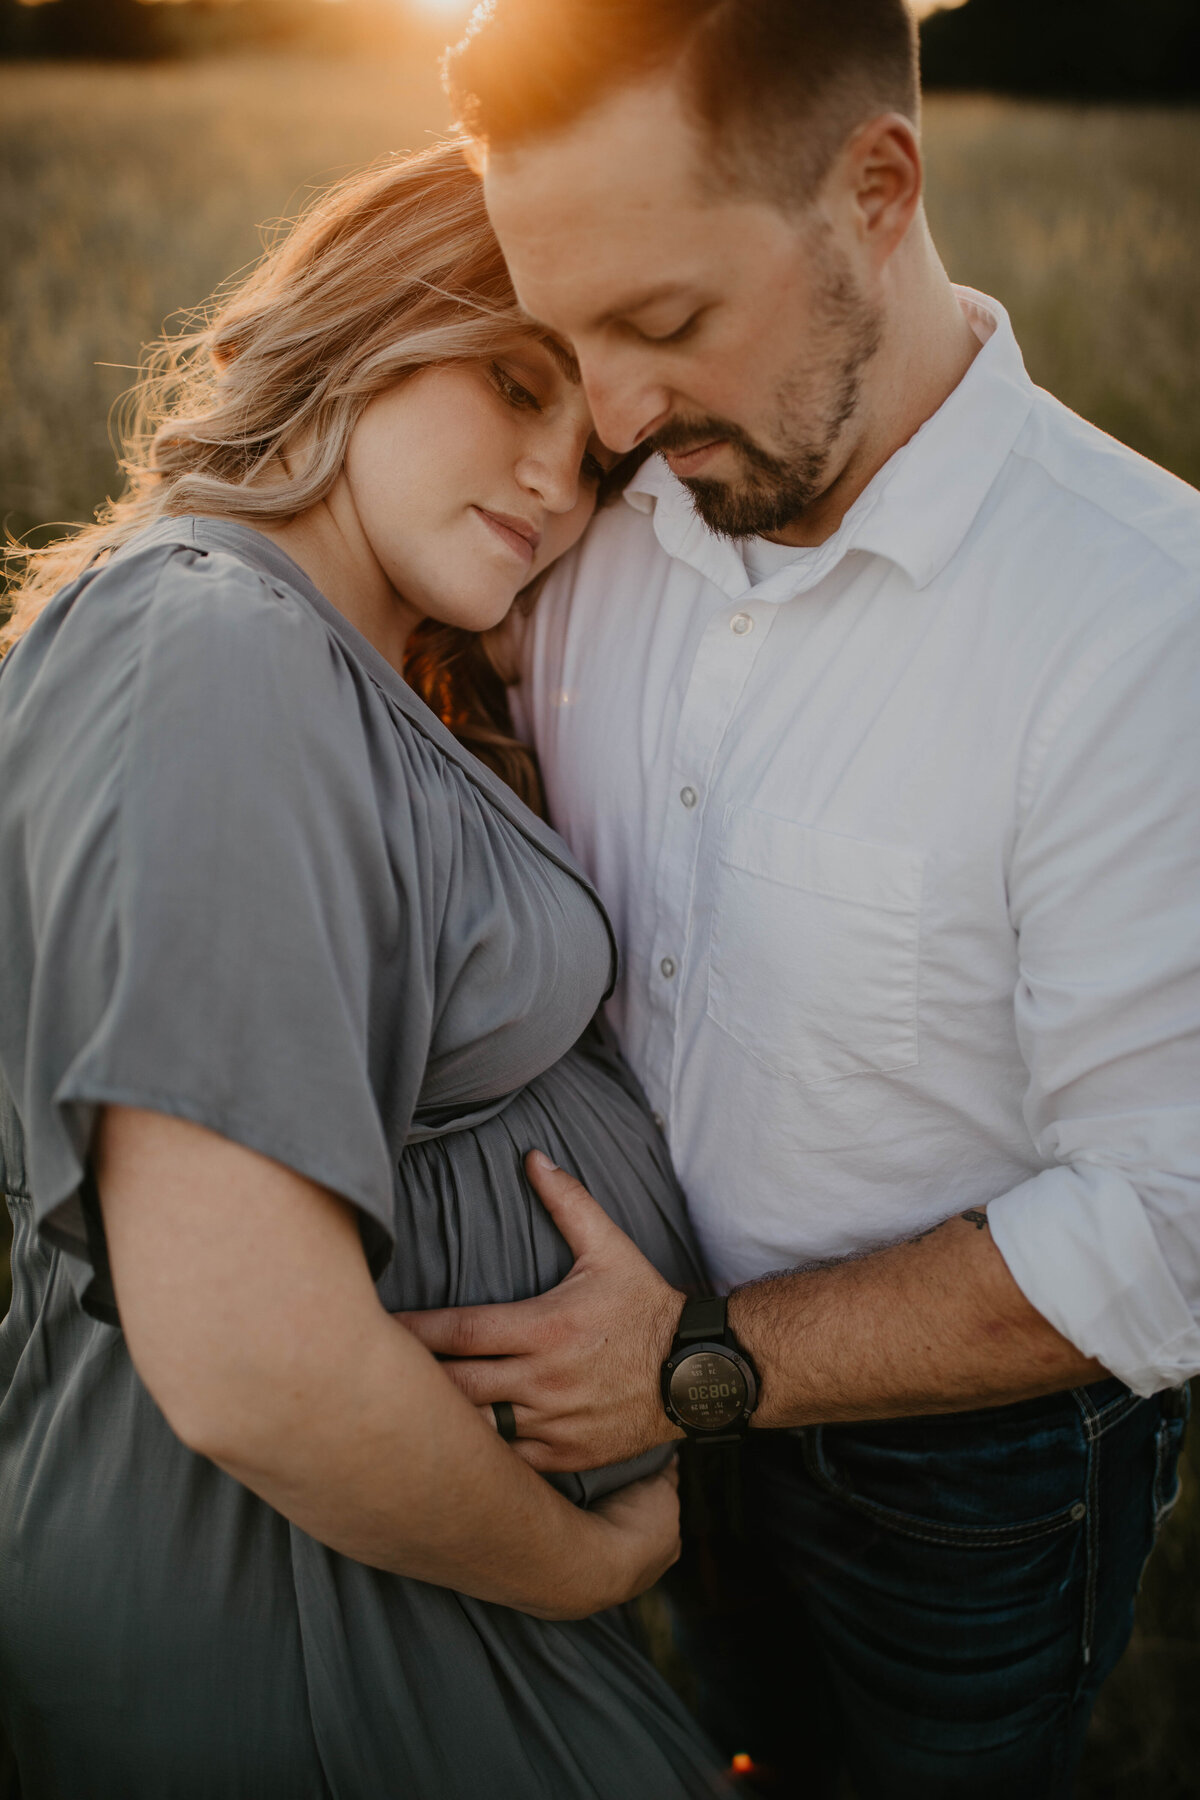 Ale Stang Andrea Corwin Photography Maternity Photographer Wichita Kansas (63 of 70)